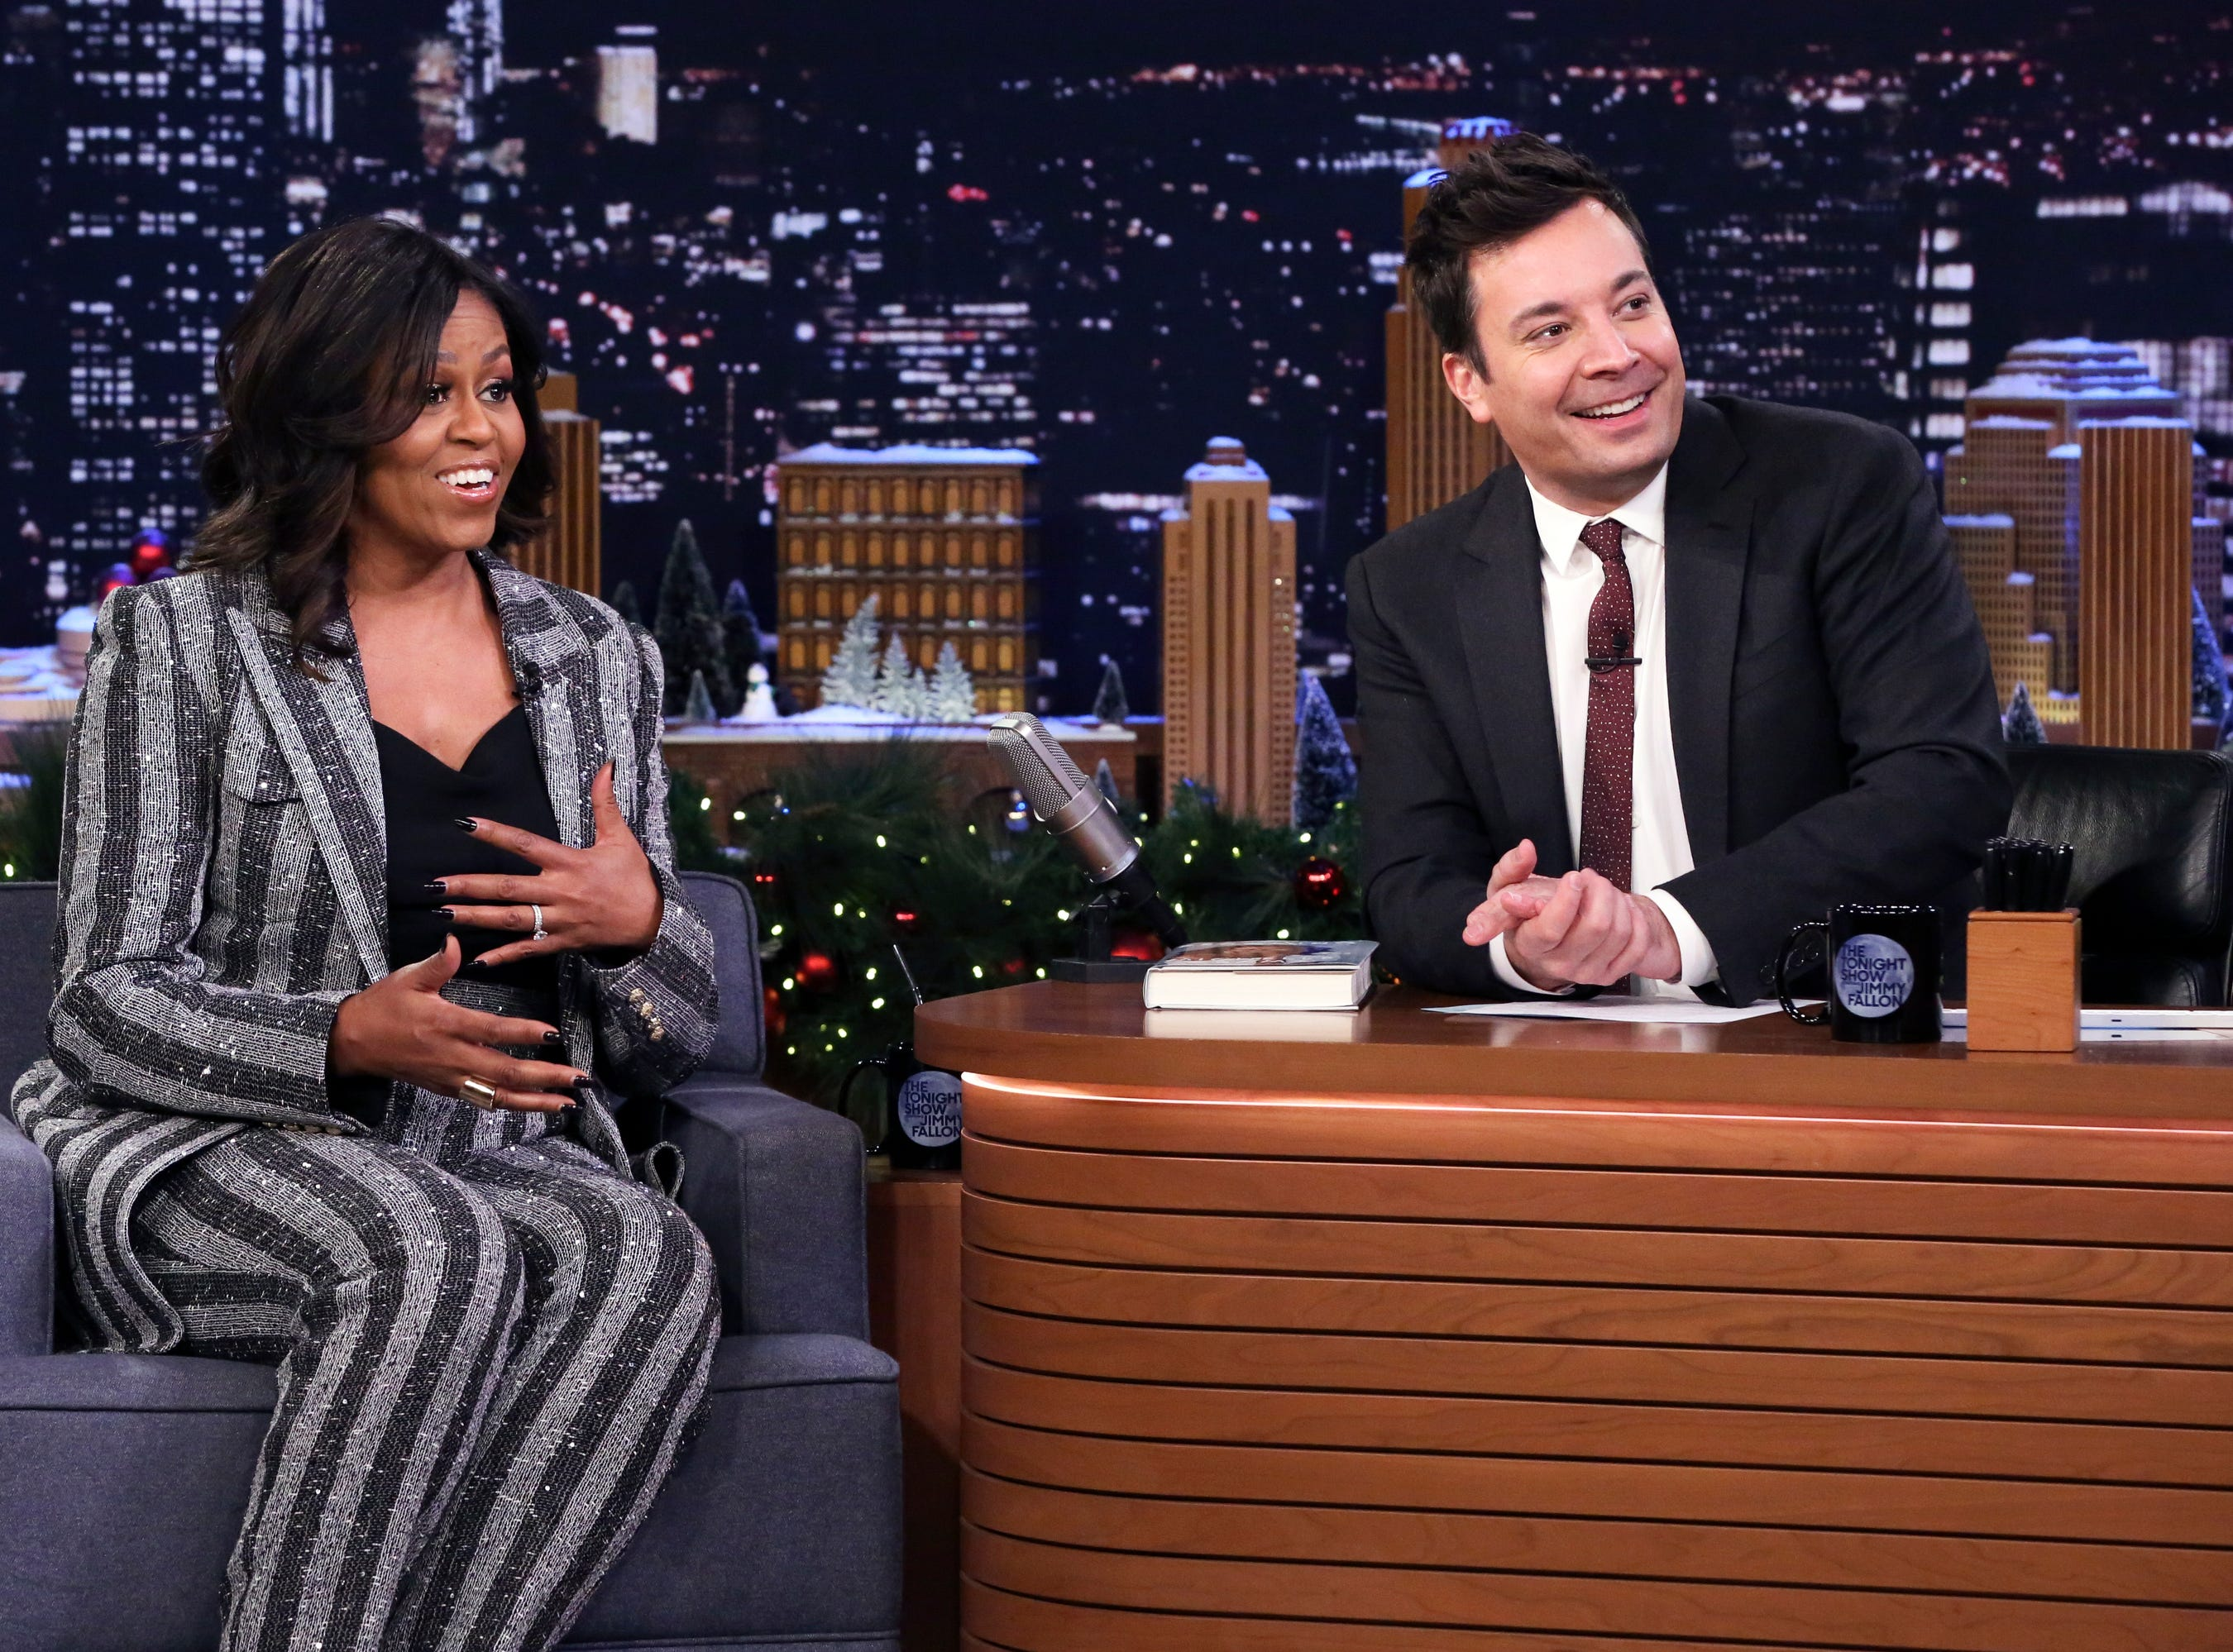 THE TONIGHT SHOW STARRING JIMMY FALLON -- Episode 0984 -- Pictured: (l-r) Michelle Obama during an interview with host Jimmy Fallon on December 18, 2018 -- (Photo by: Andrew Lipovsky/NBC) ORG XMIT: Season: 6 [Via MerlinFTP Drop]